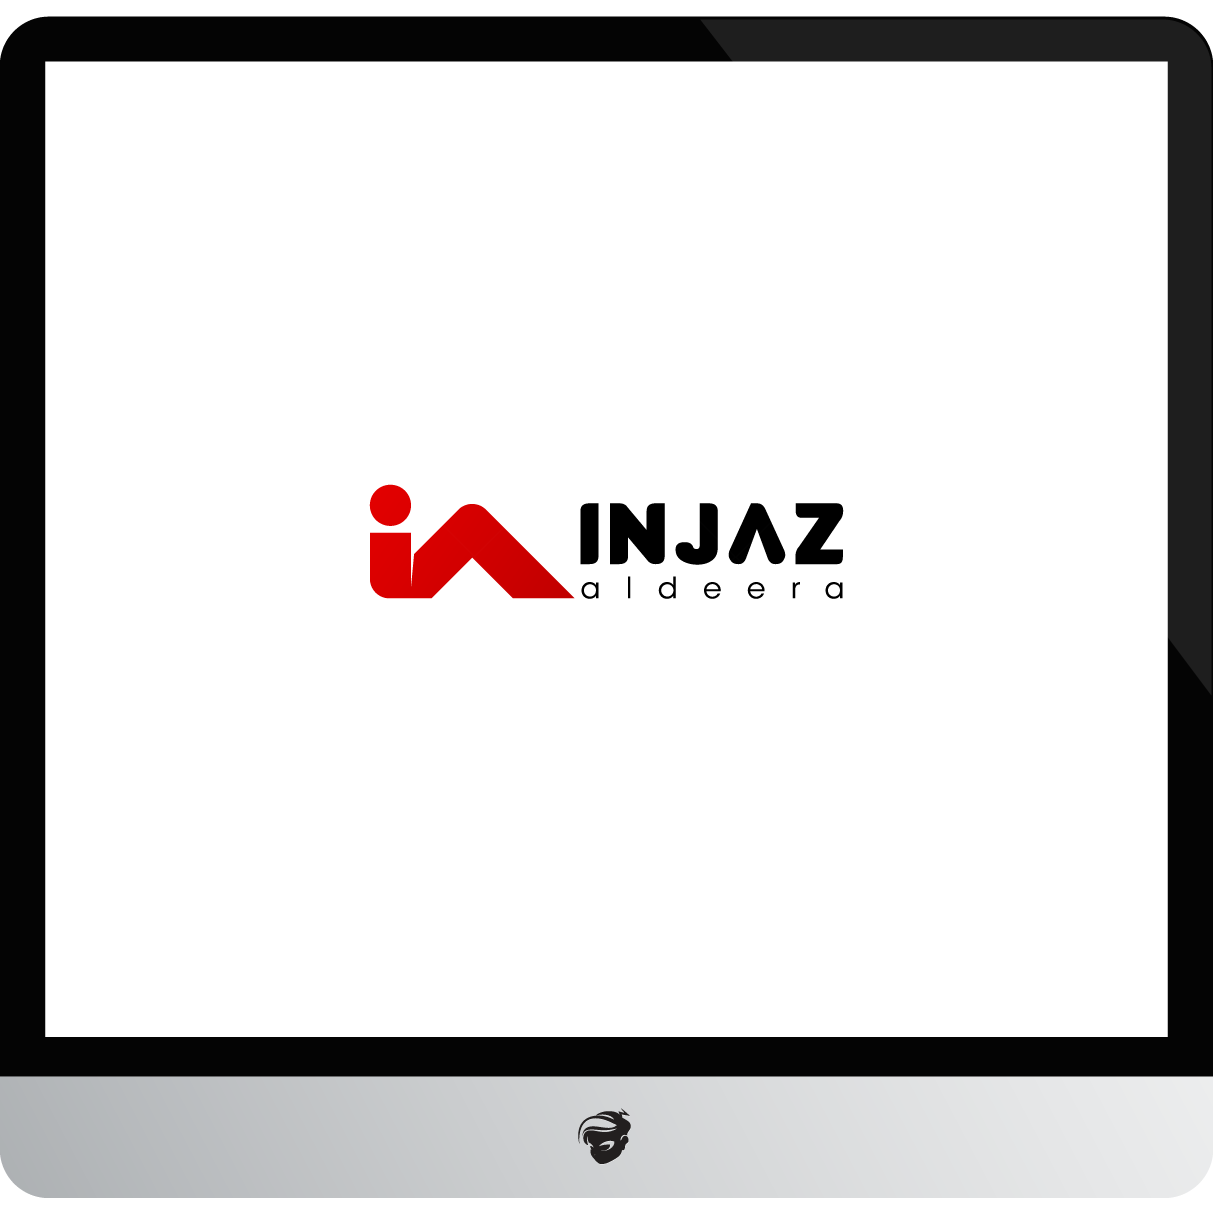 Logo Design by zesthar - Entry No. 49 in the Logo Design Contest Fun Logo Design for Injaz aldeera.